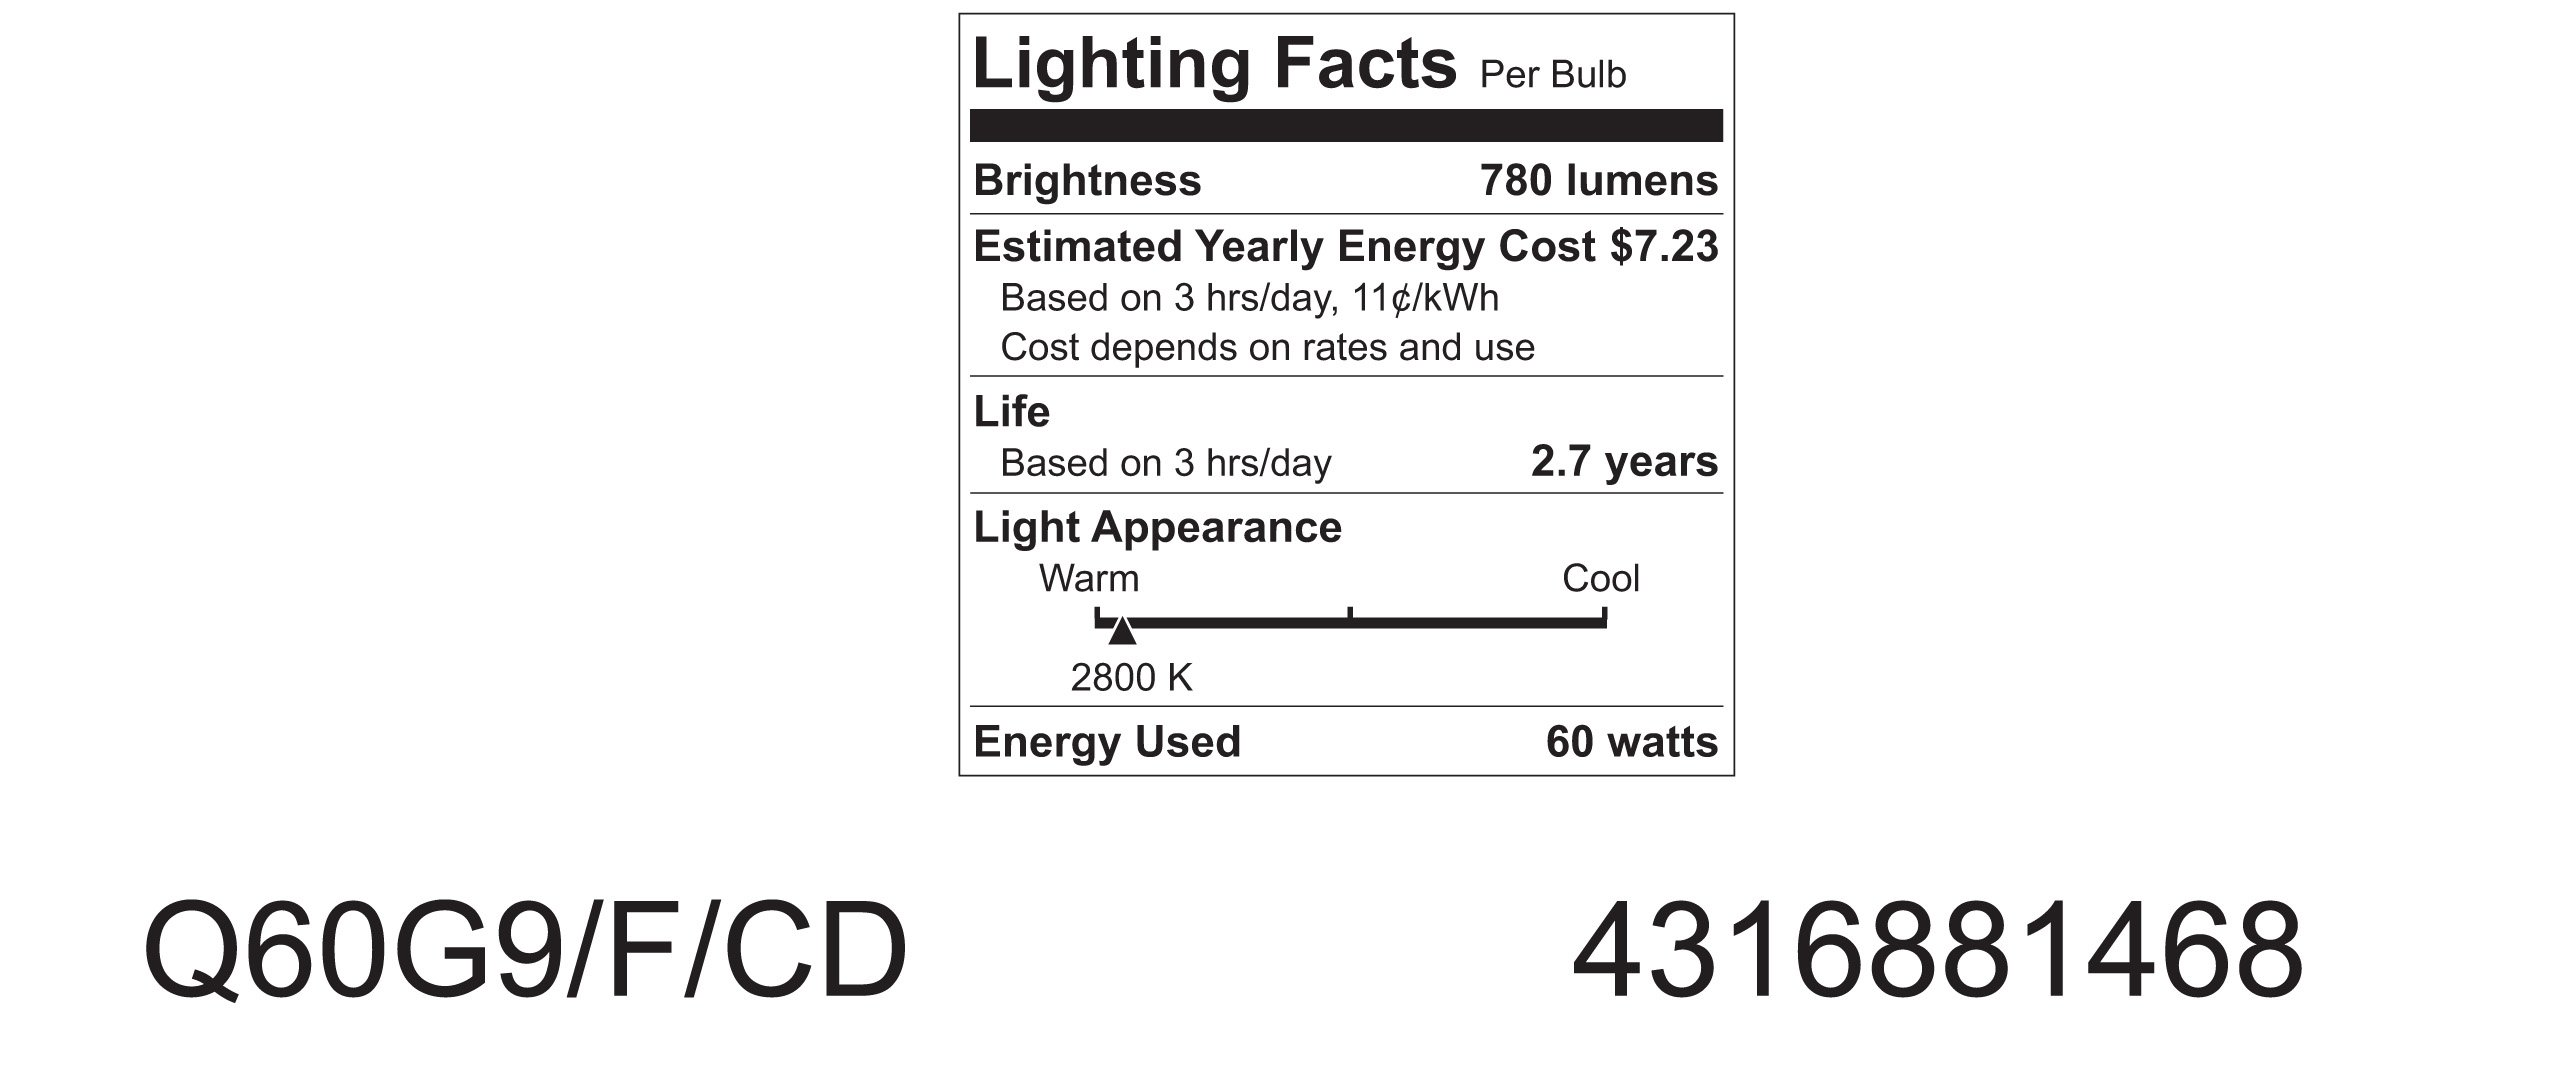 GE Lighting 81468 60-Watt 780-Lumen T4 Light Bulb with G9 Base, 5-Pack